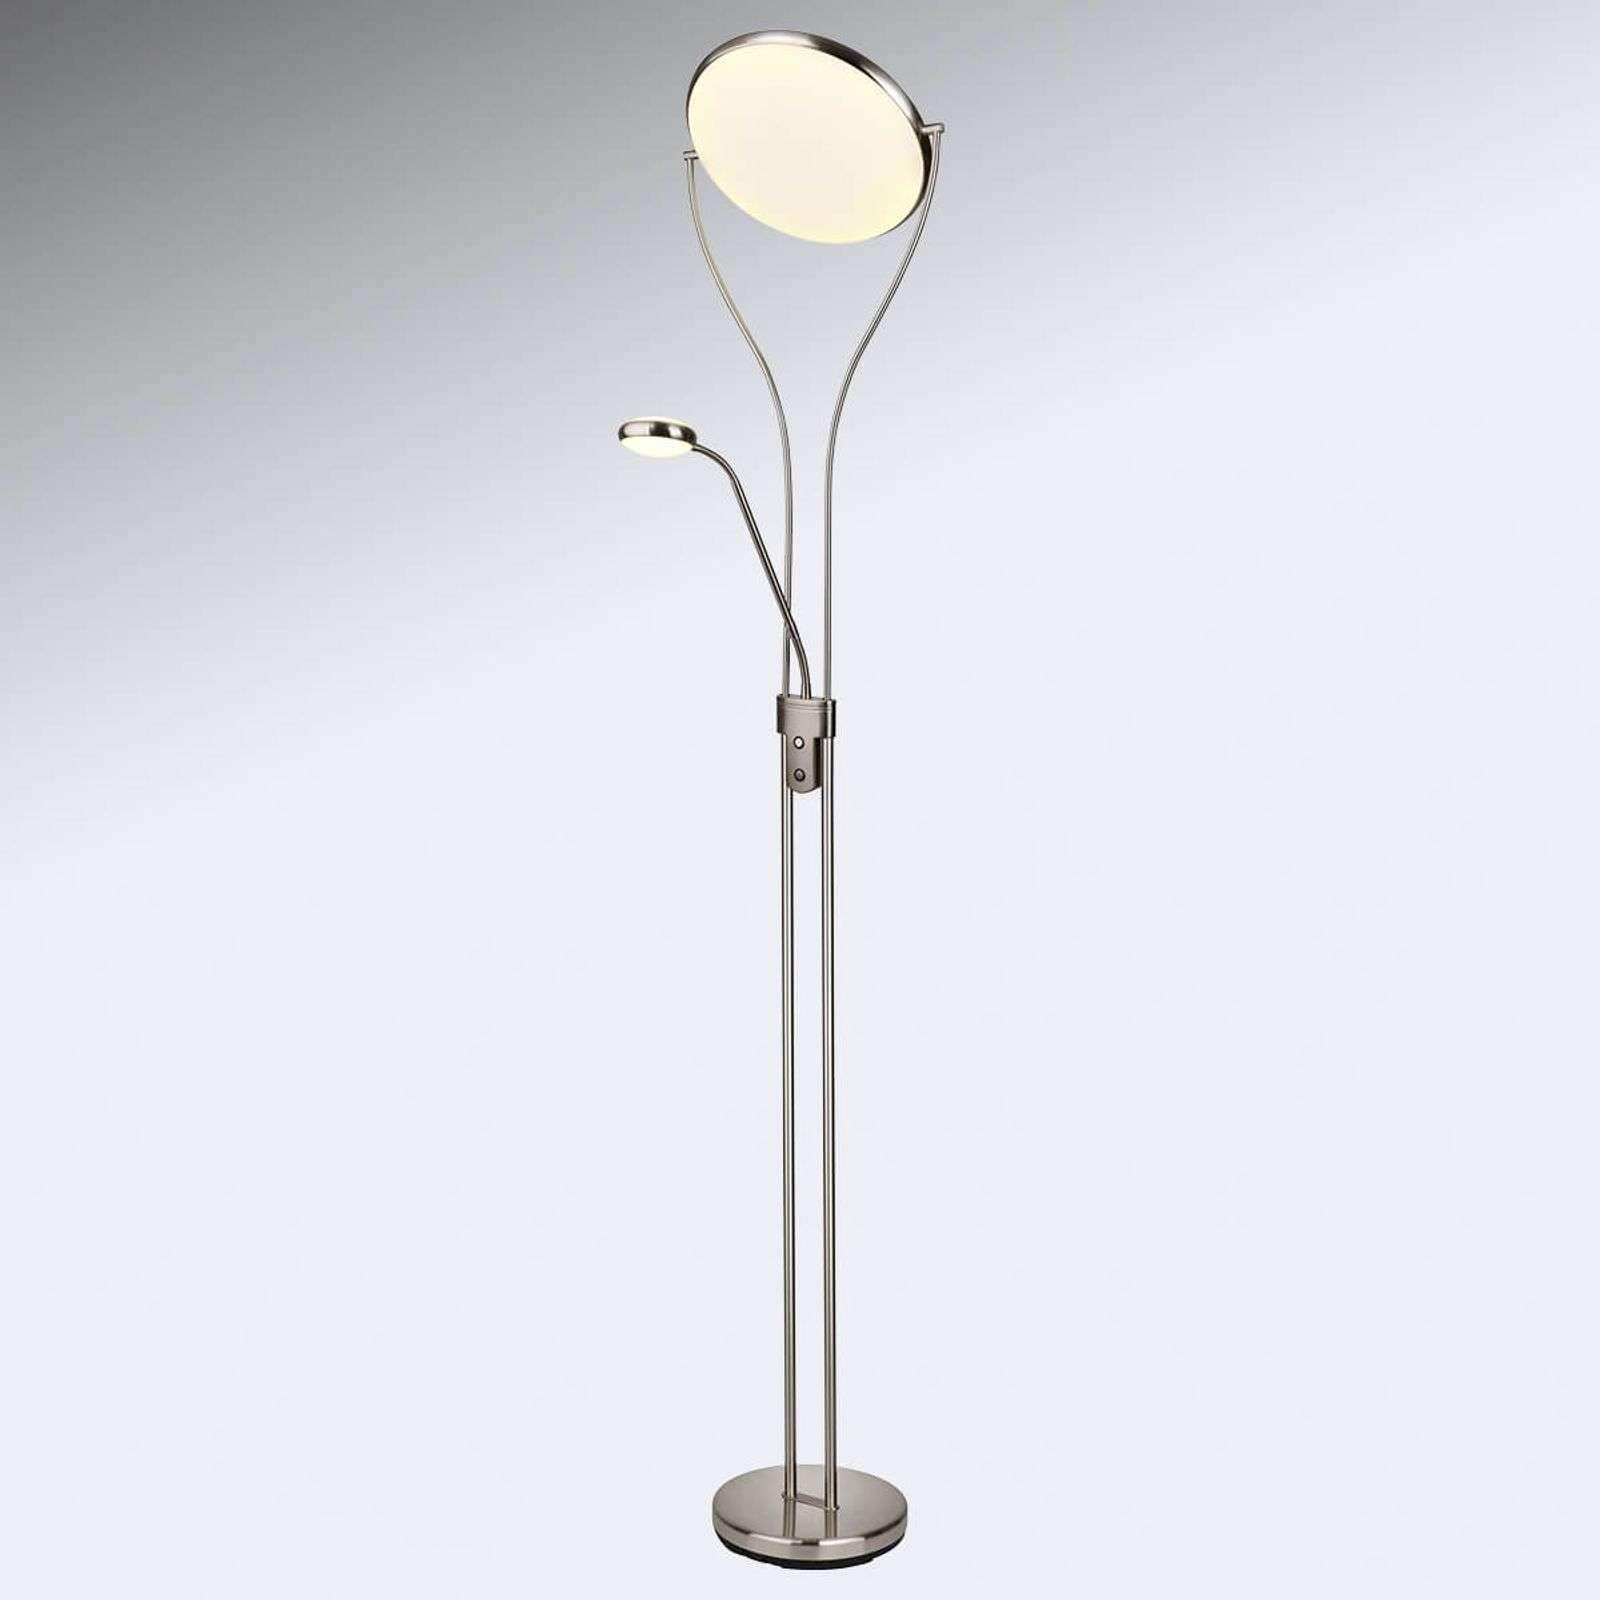 Lampadaire éclairage indirect LED Double, liseuse